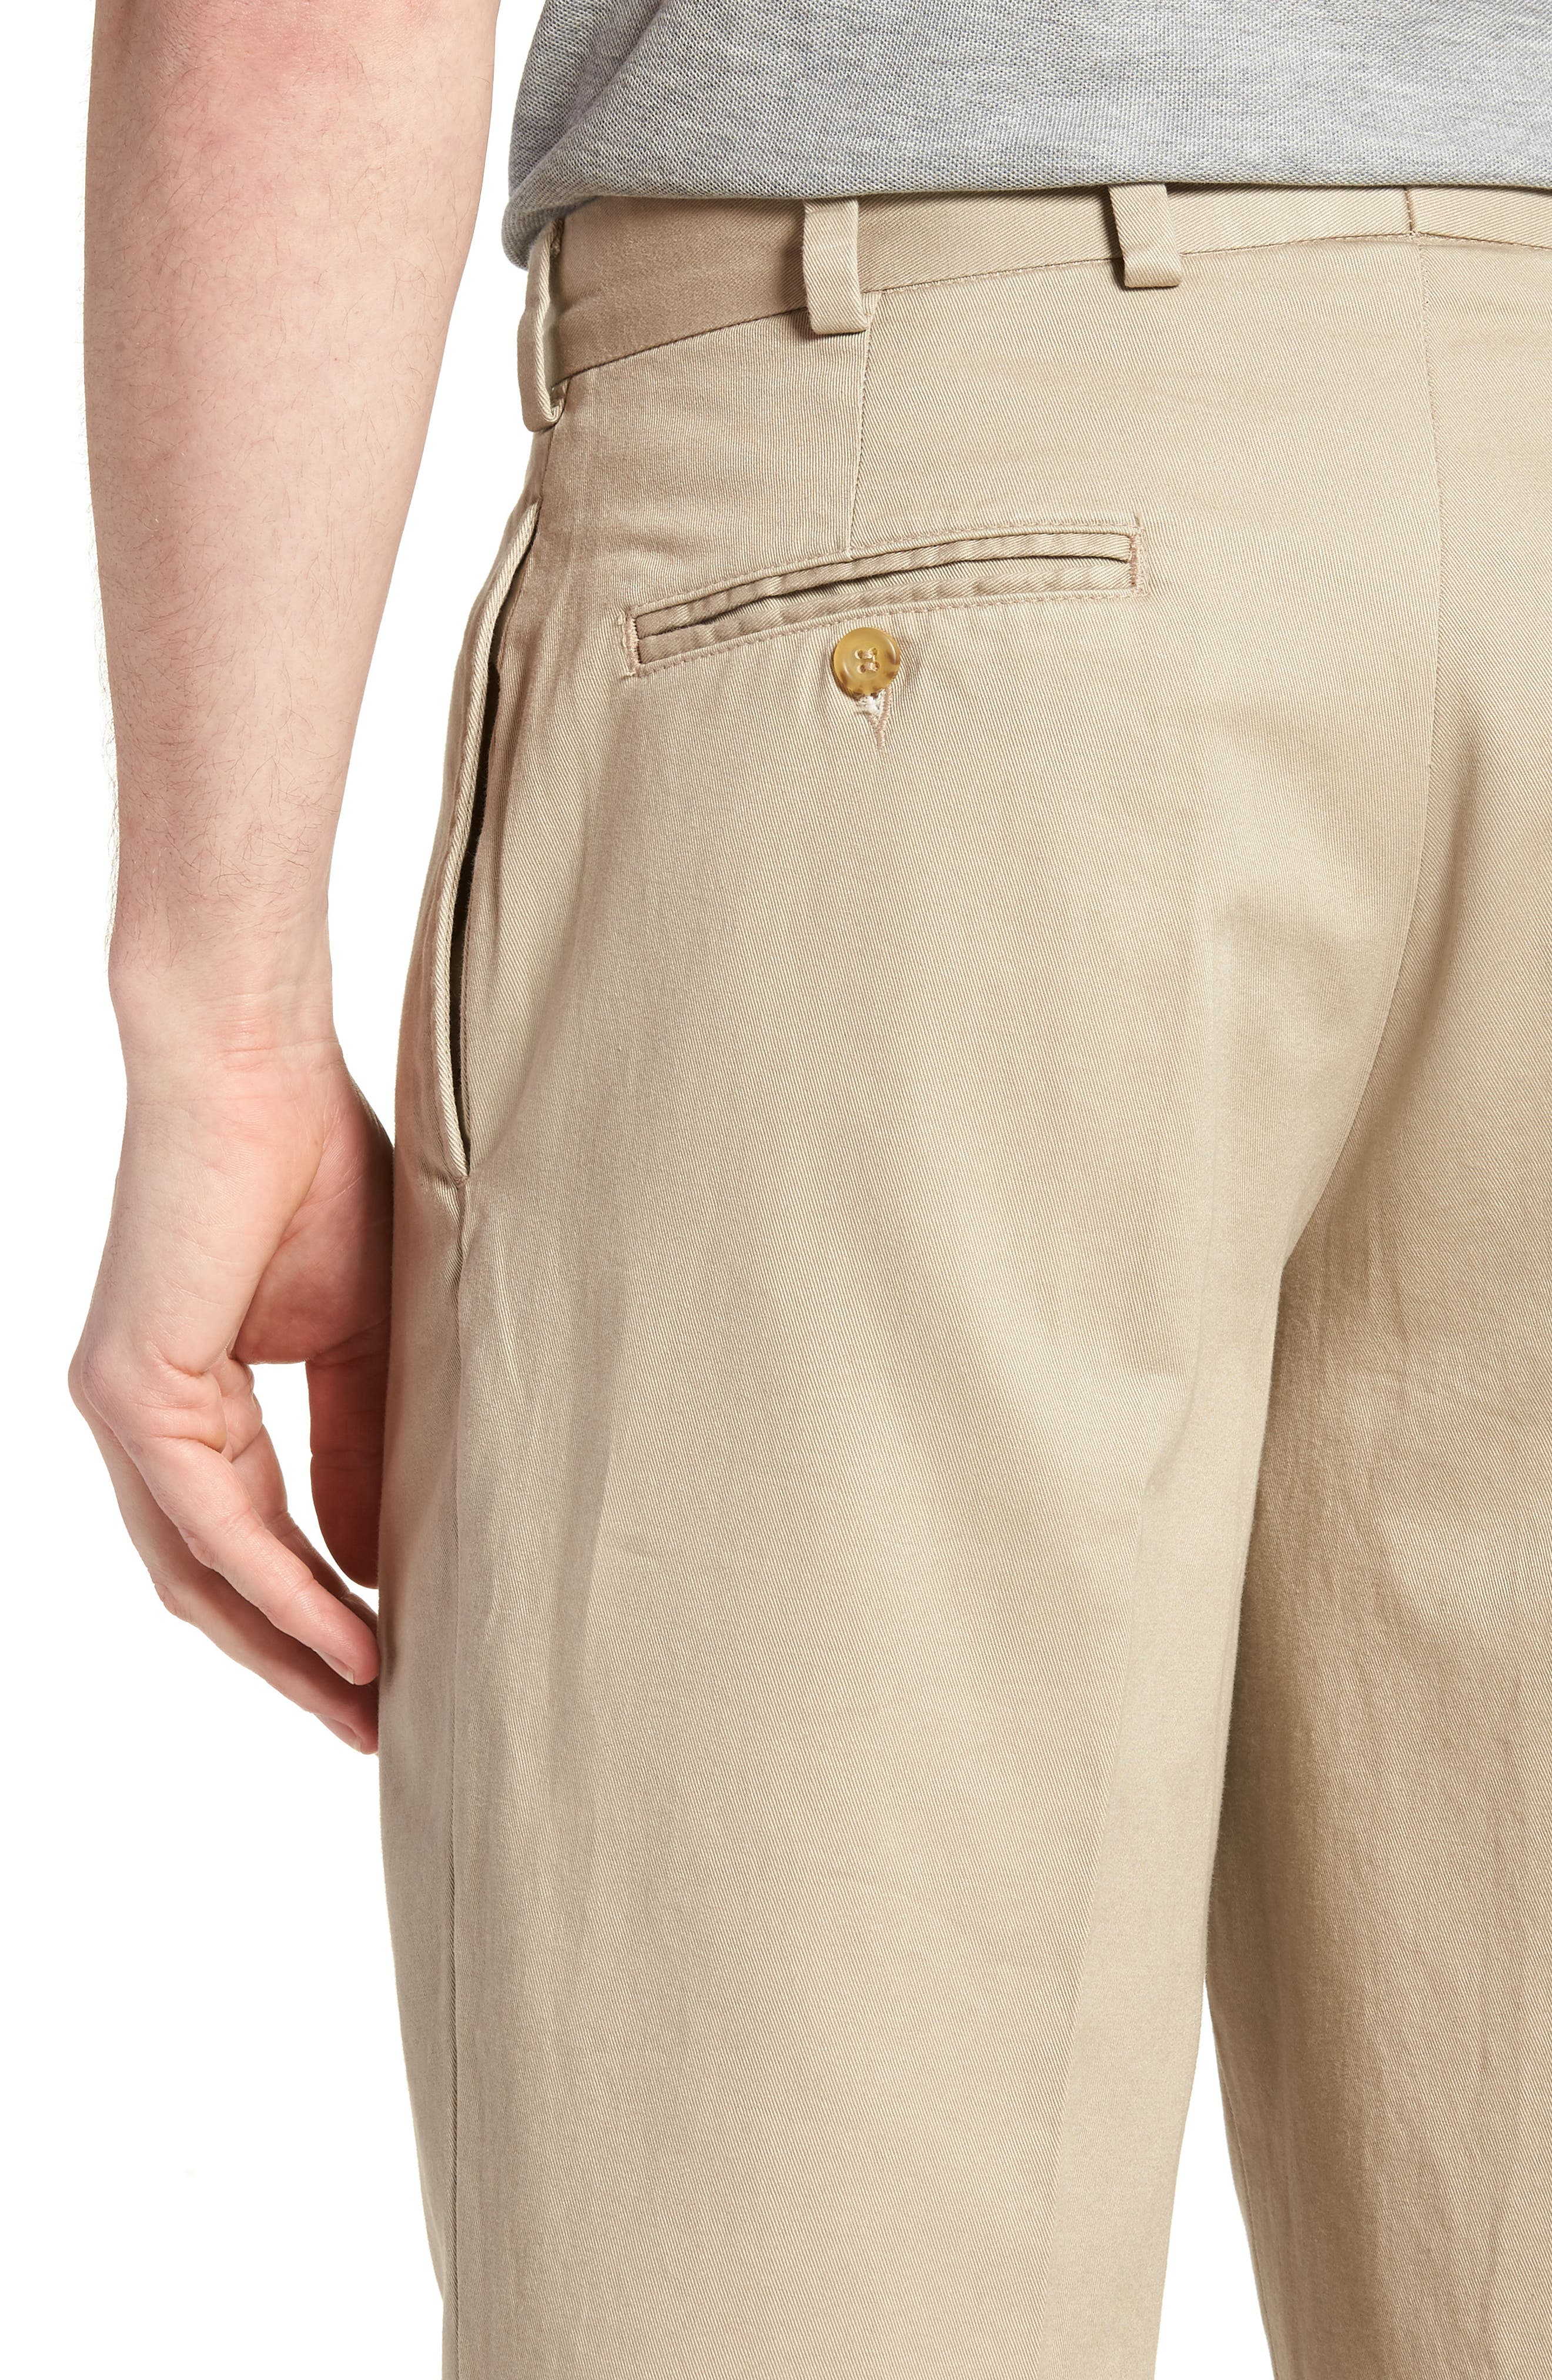 M2 Classic Fit Pleated Vintage Twill Pants,                             Alternate thumbnail 4, color,                             250